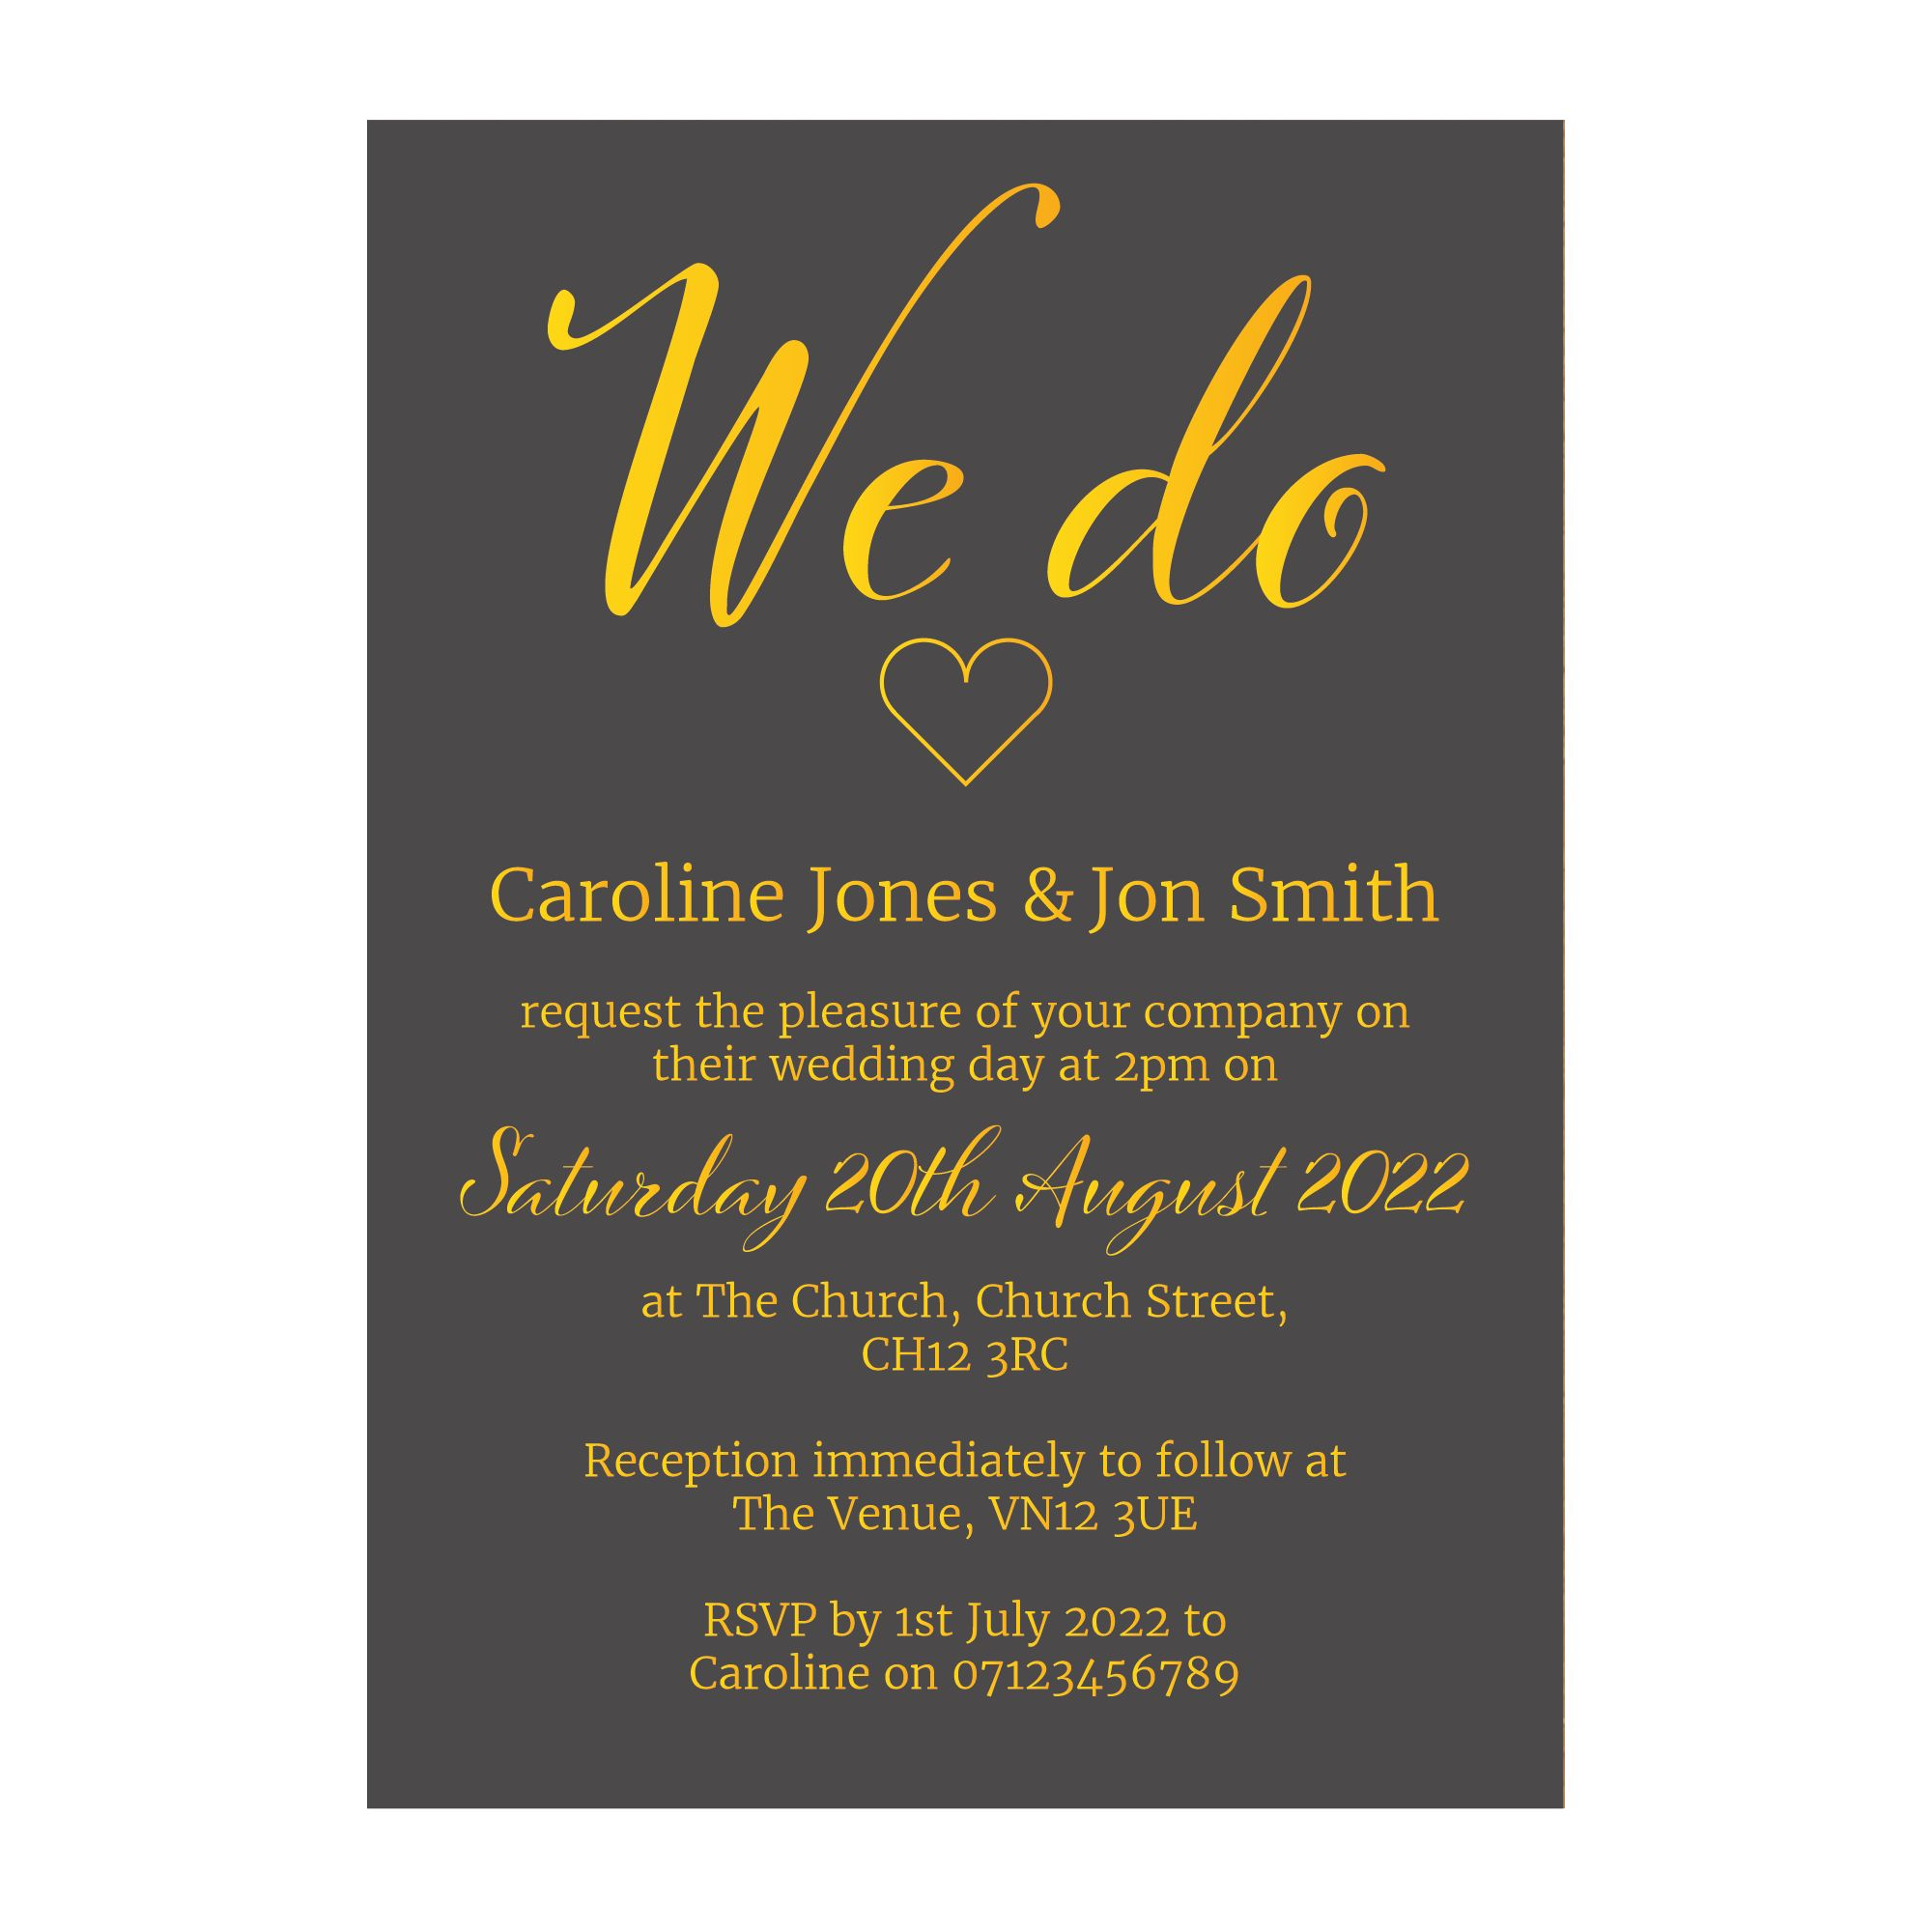 Grey with Gold Foil We Do Wedding Invitations